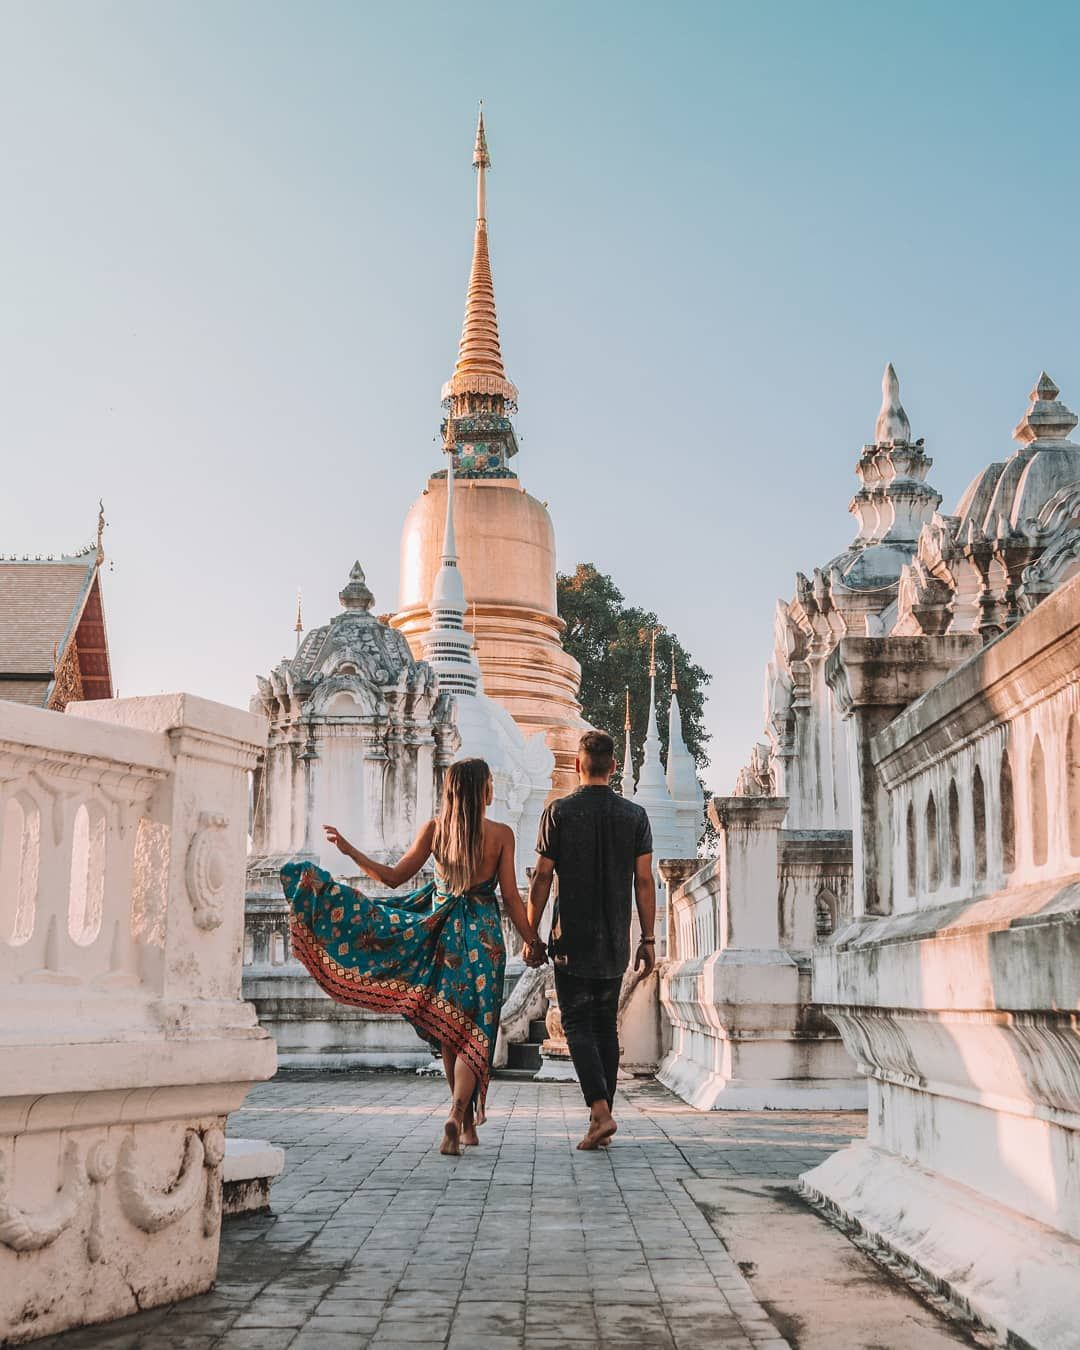 #traveling teaches us to be more grateful #couple #culture #thailand #temple